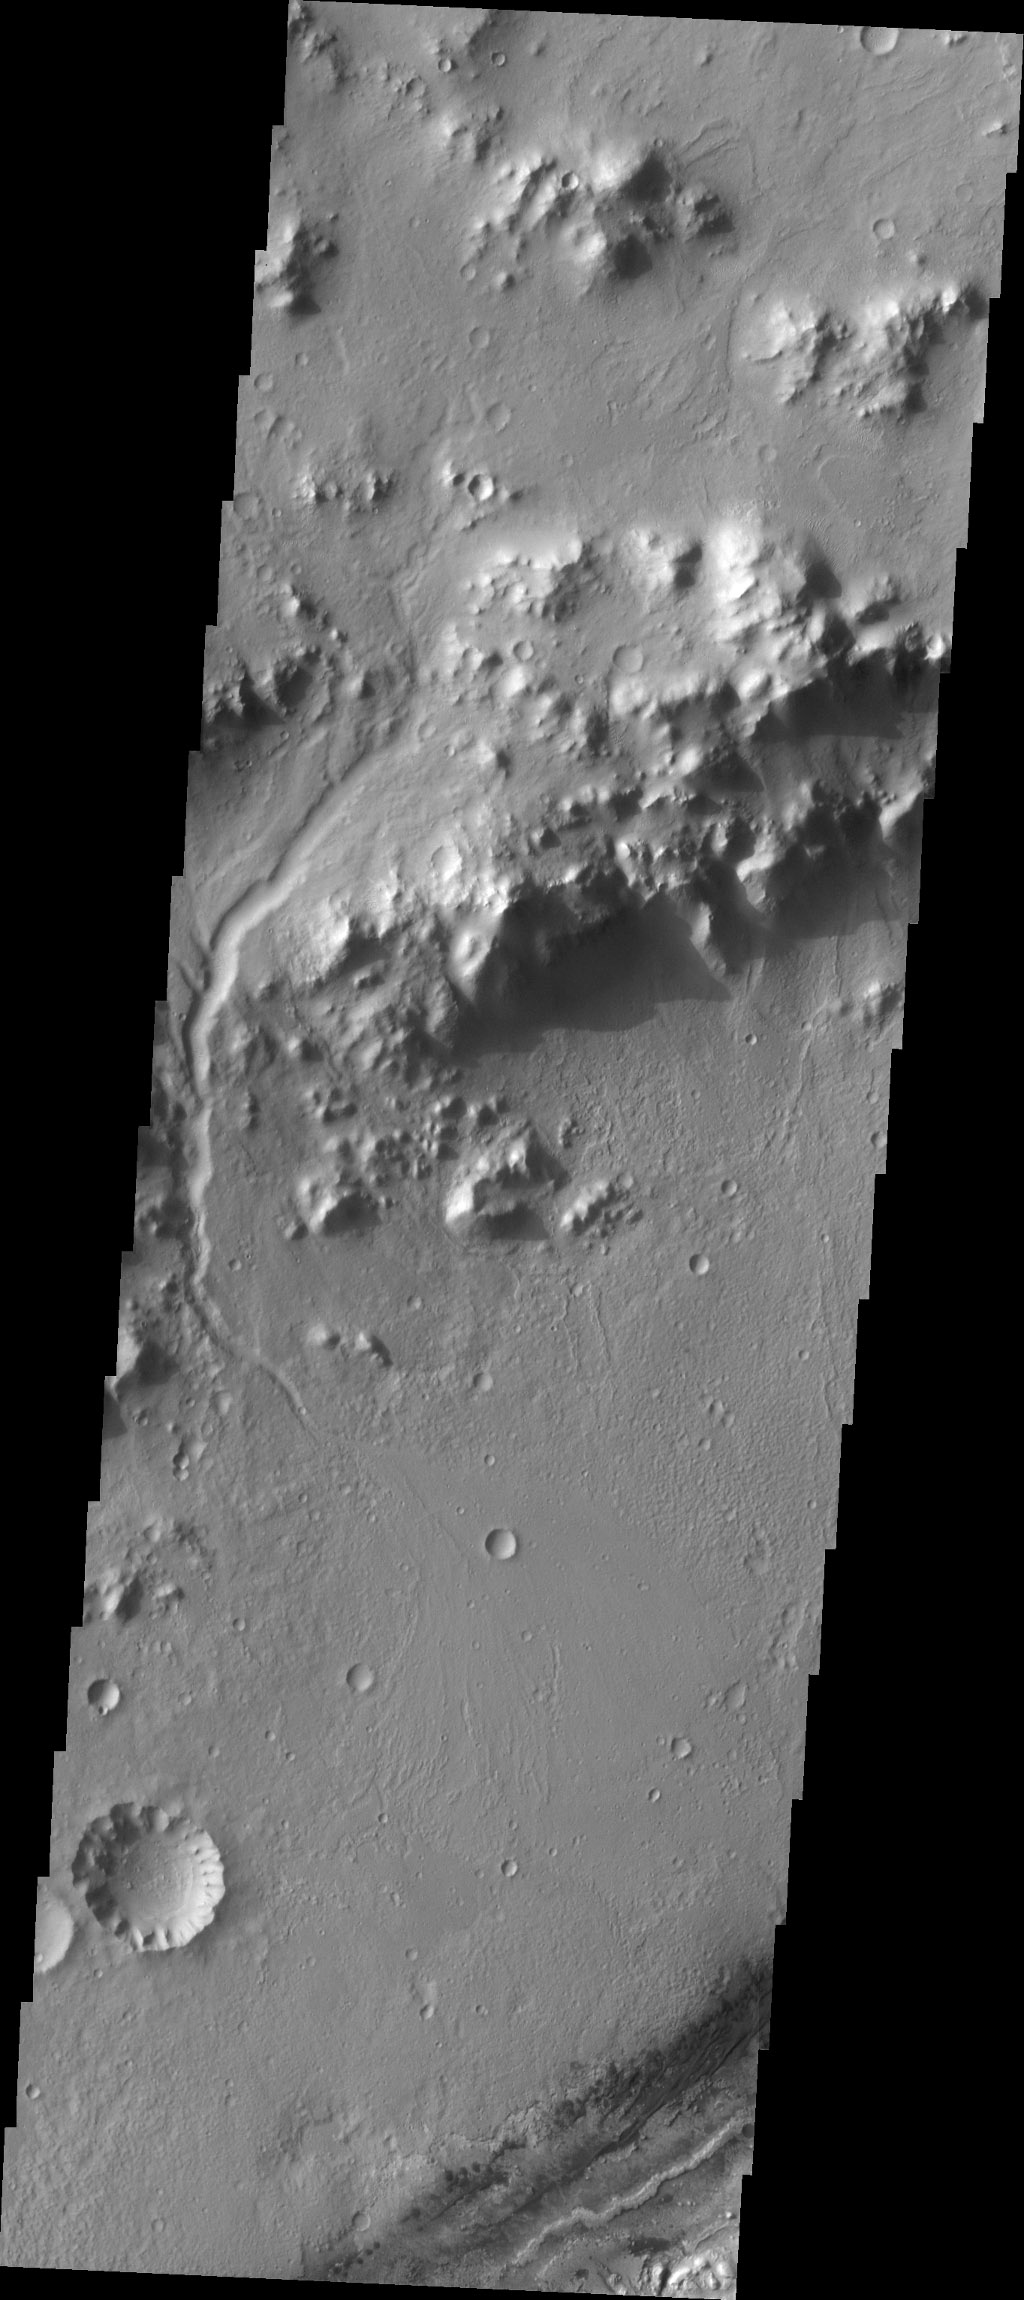 This image captured by NASA's 2001 Mars Odyssey spacecraft contains the landing site in the bottom right portion of the image, near the dark dunes. Note the channel that cuts through the crater rim on the left side of the image.